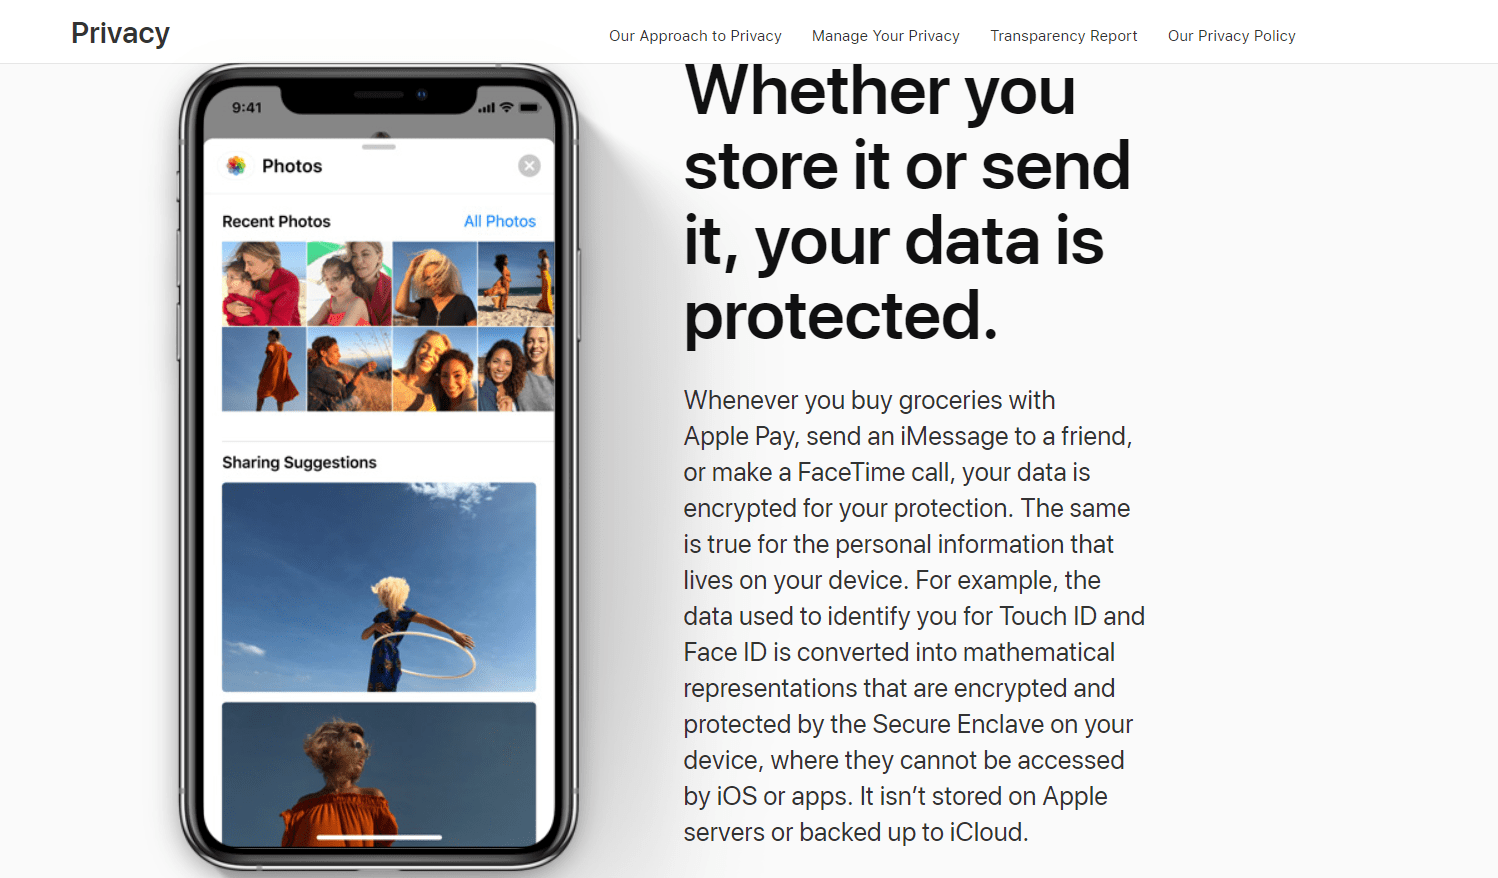 Apple is fighting to protect users' privacy